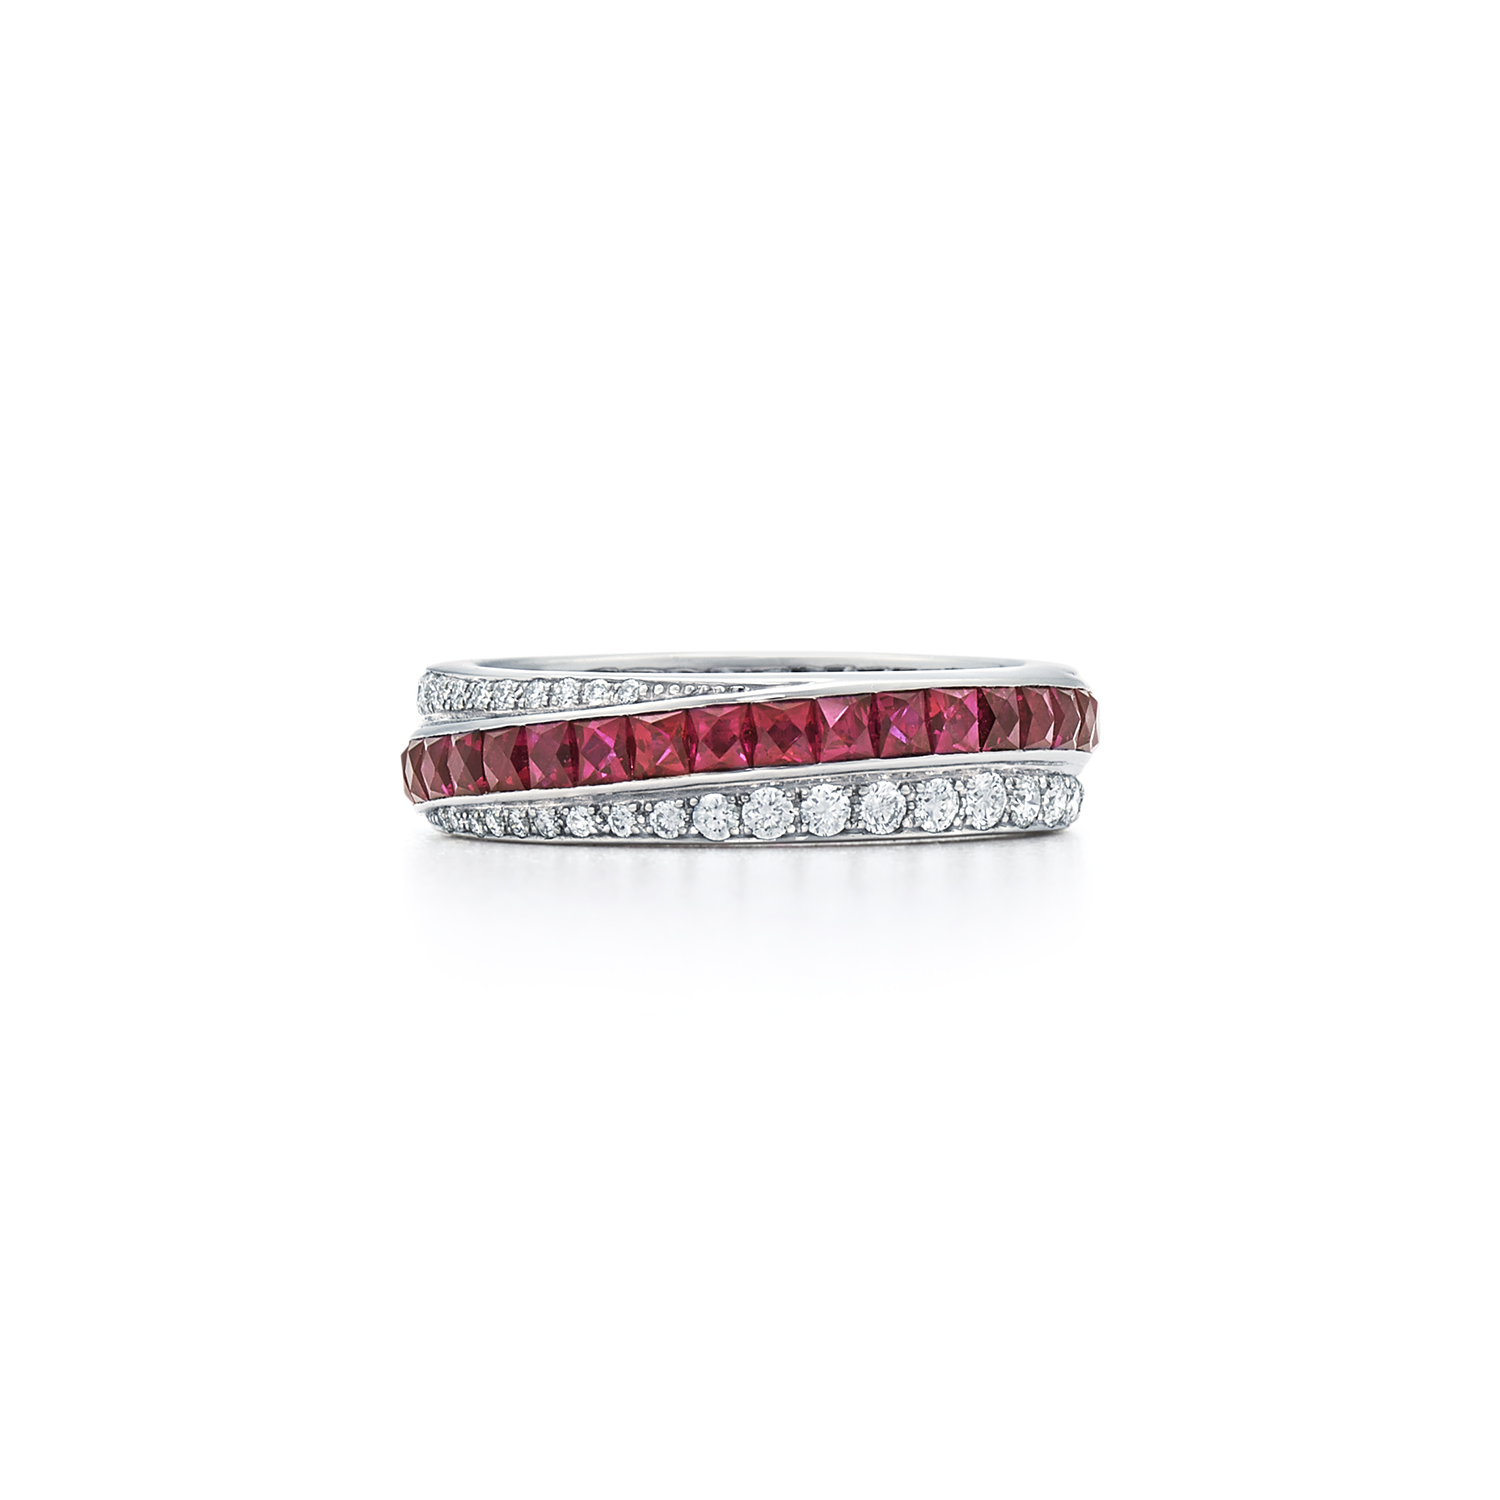 Signed Fred Leighton Diamond and Ruby Stripe Eternity Band Ring R1005-DIARUB